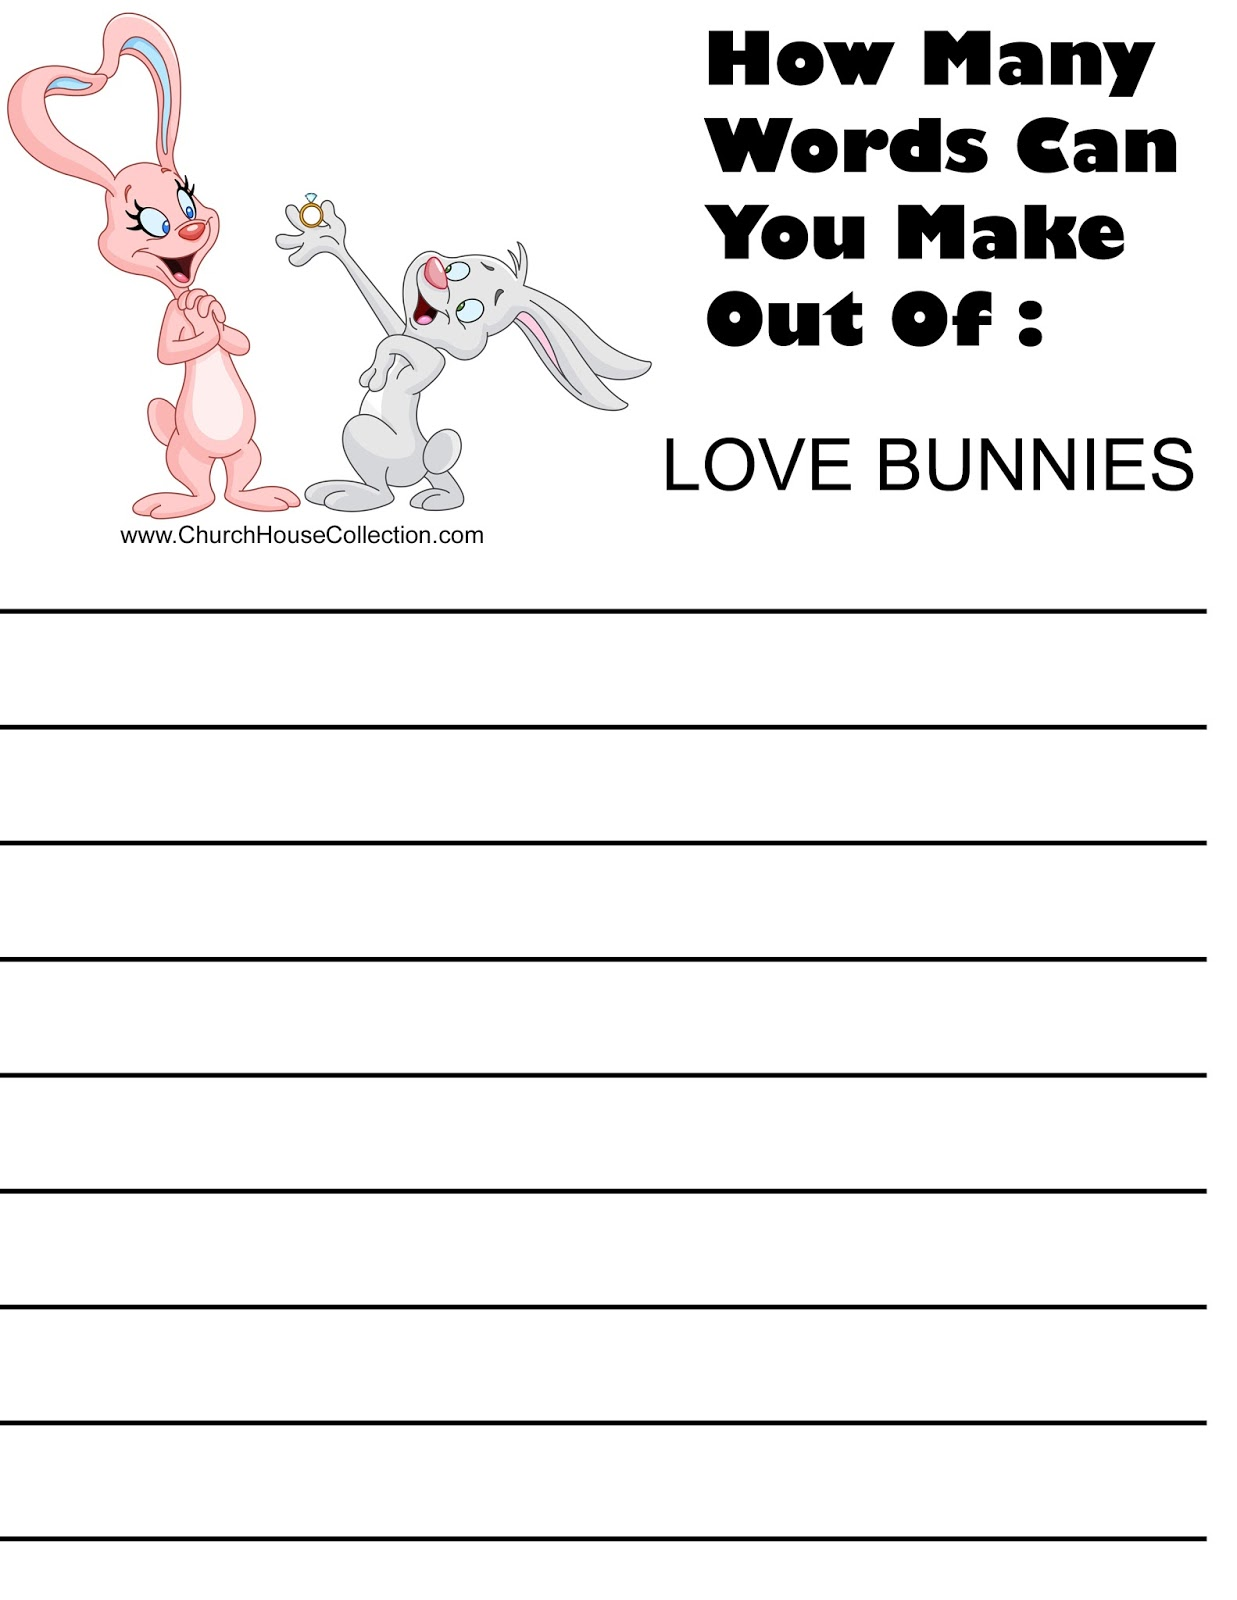 Church House Collection Blog: Valentine Worksheet For Kids: How Many ...